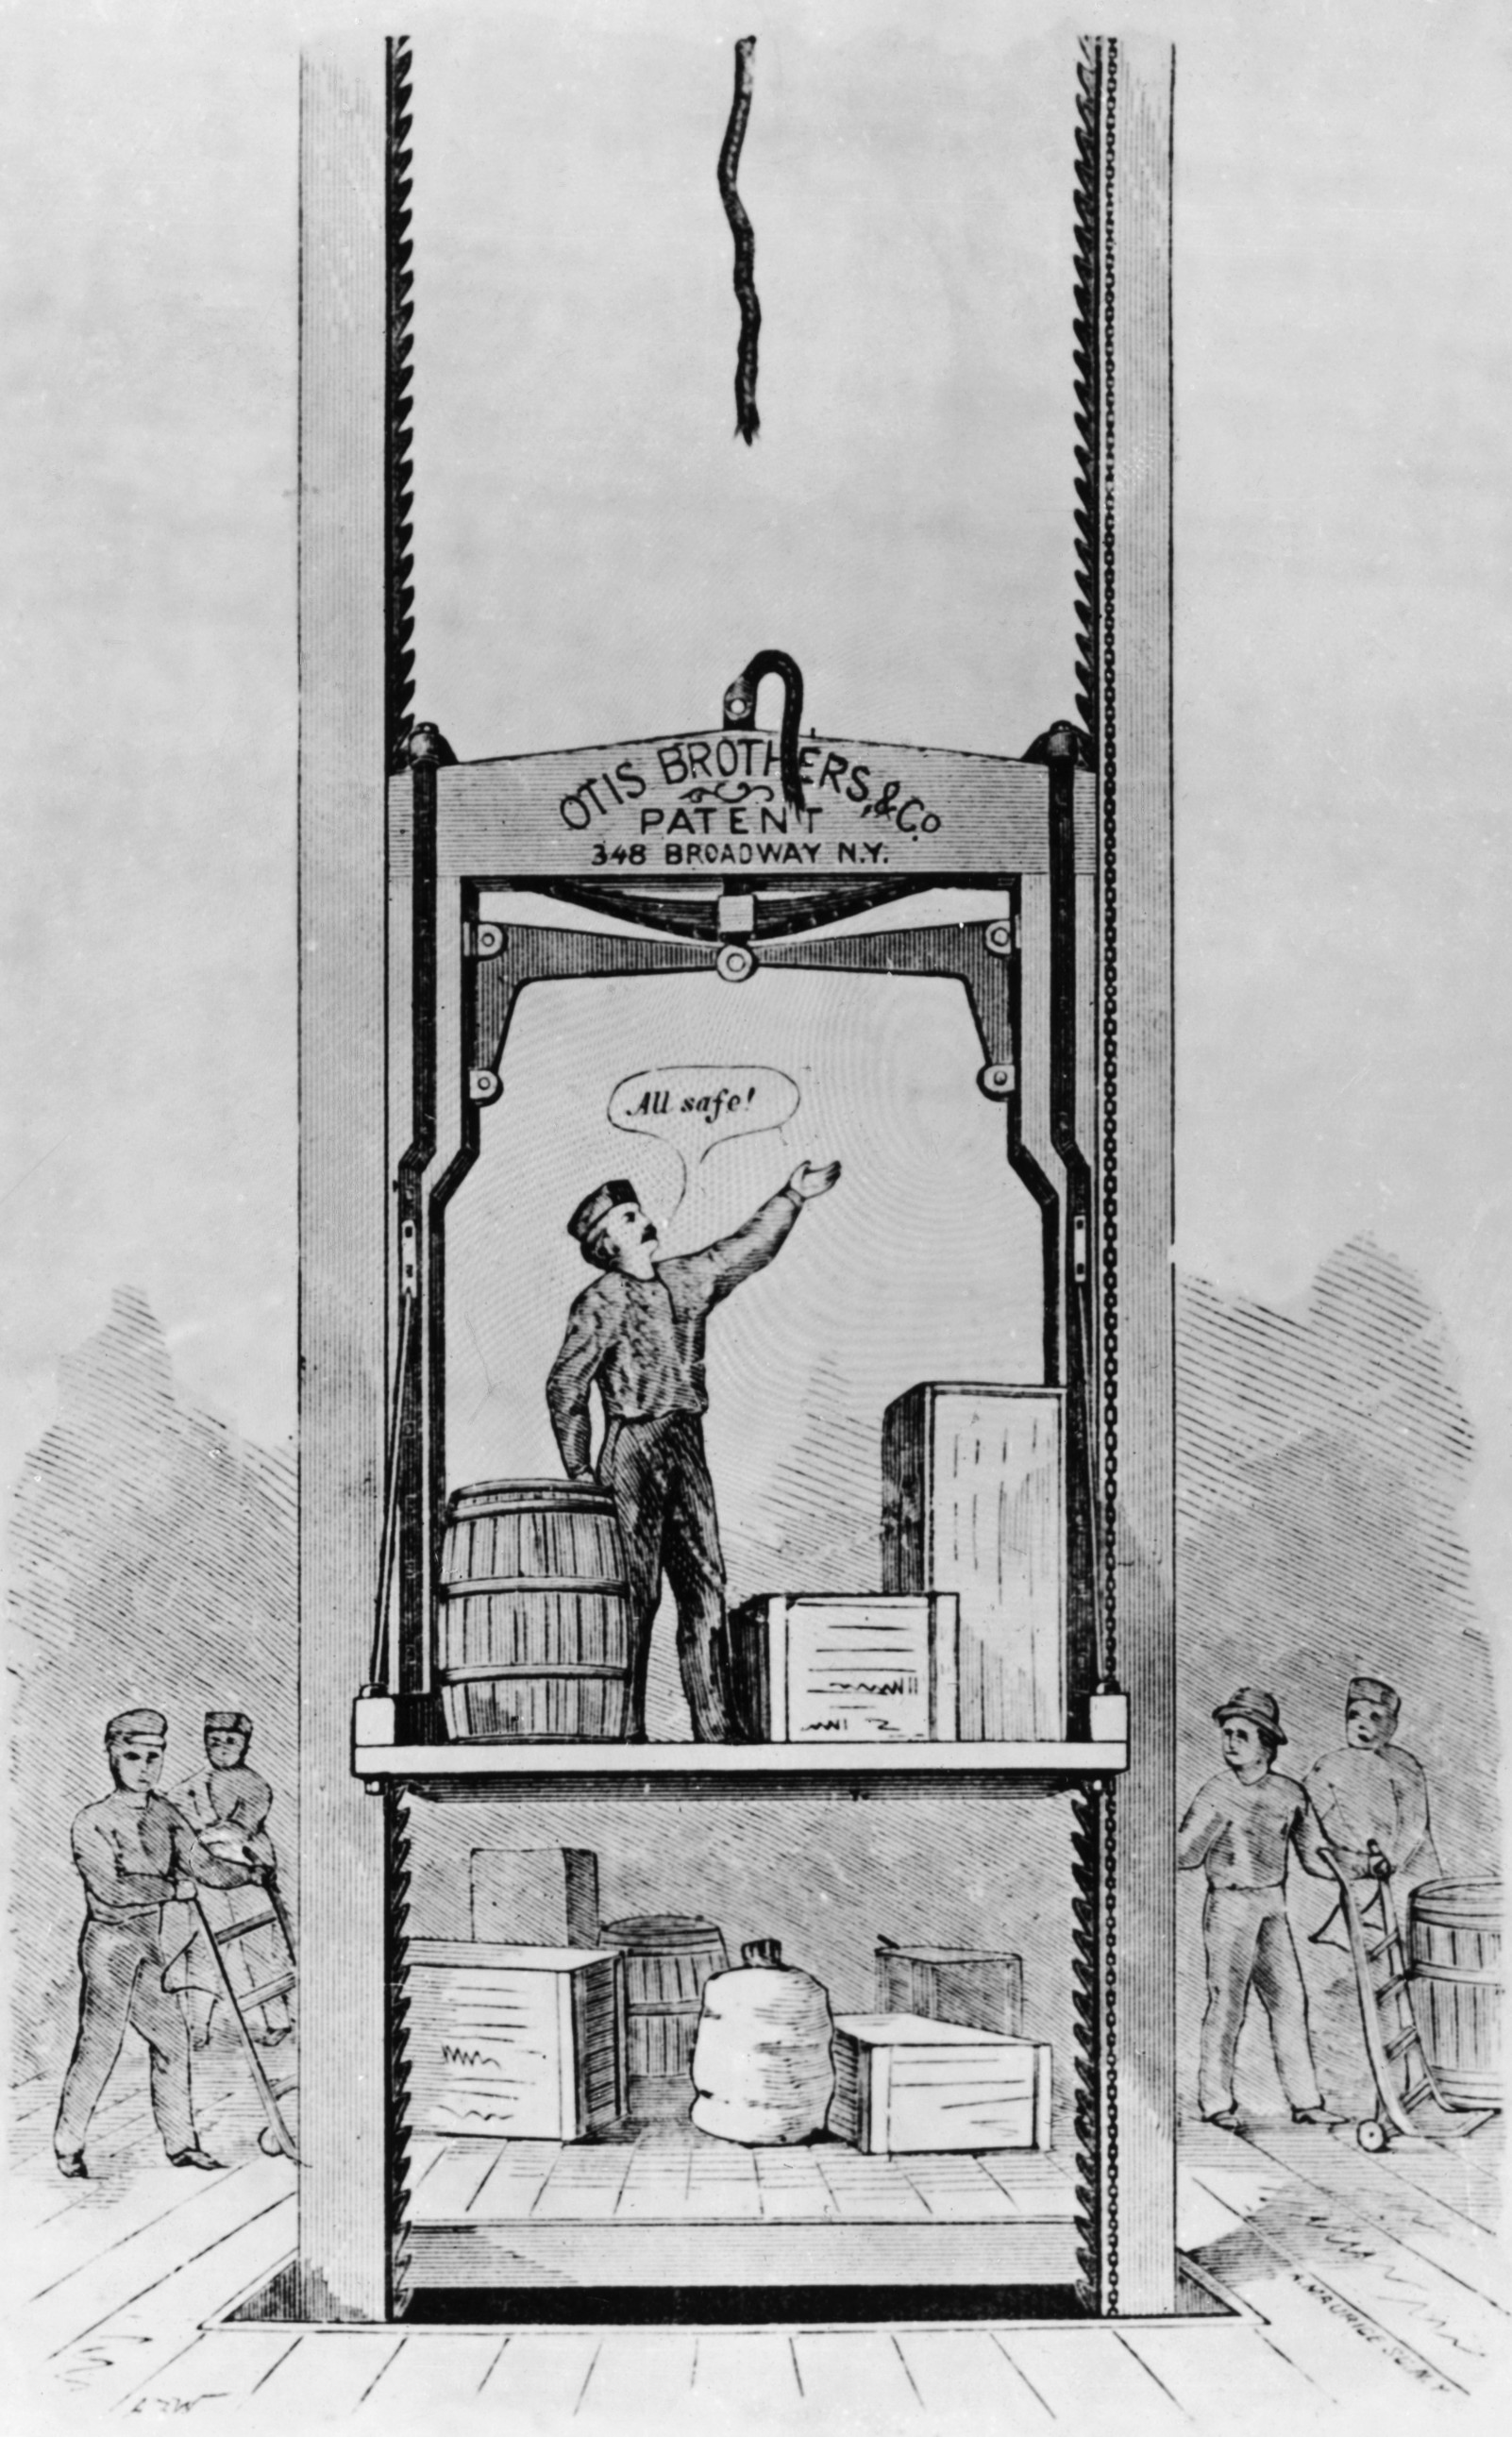 the invention of electricity changed the 19th century Major inventions timeline: 18th century and 19th  the 19th century inventions of useable electricity,  there's always room for improvement and change.